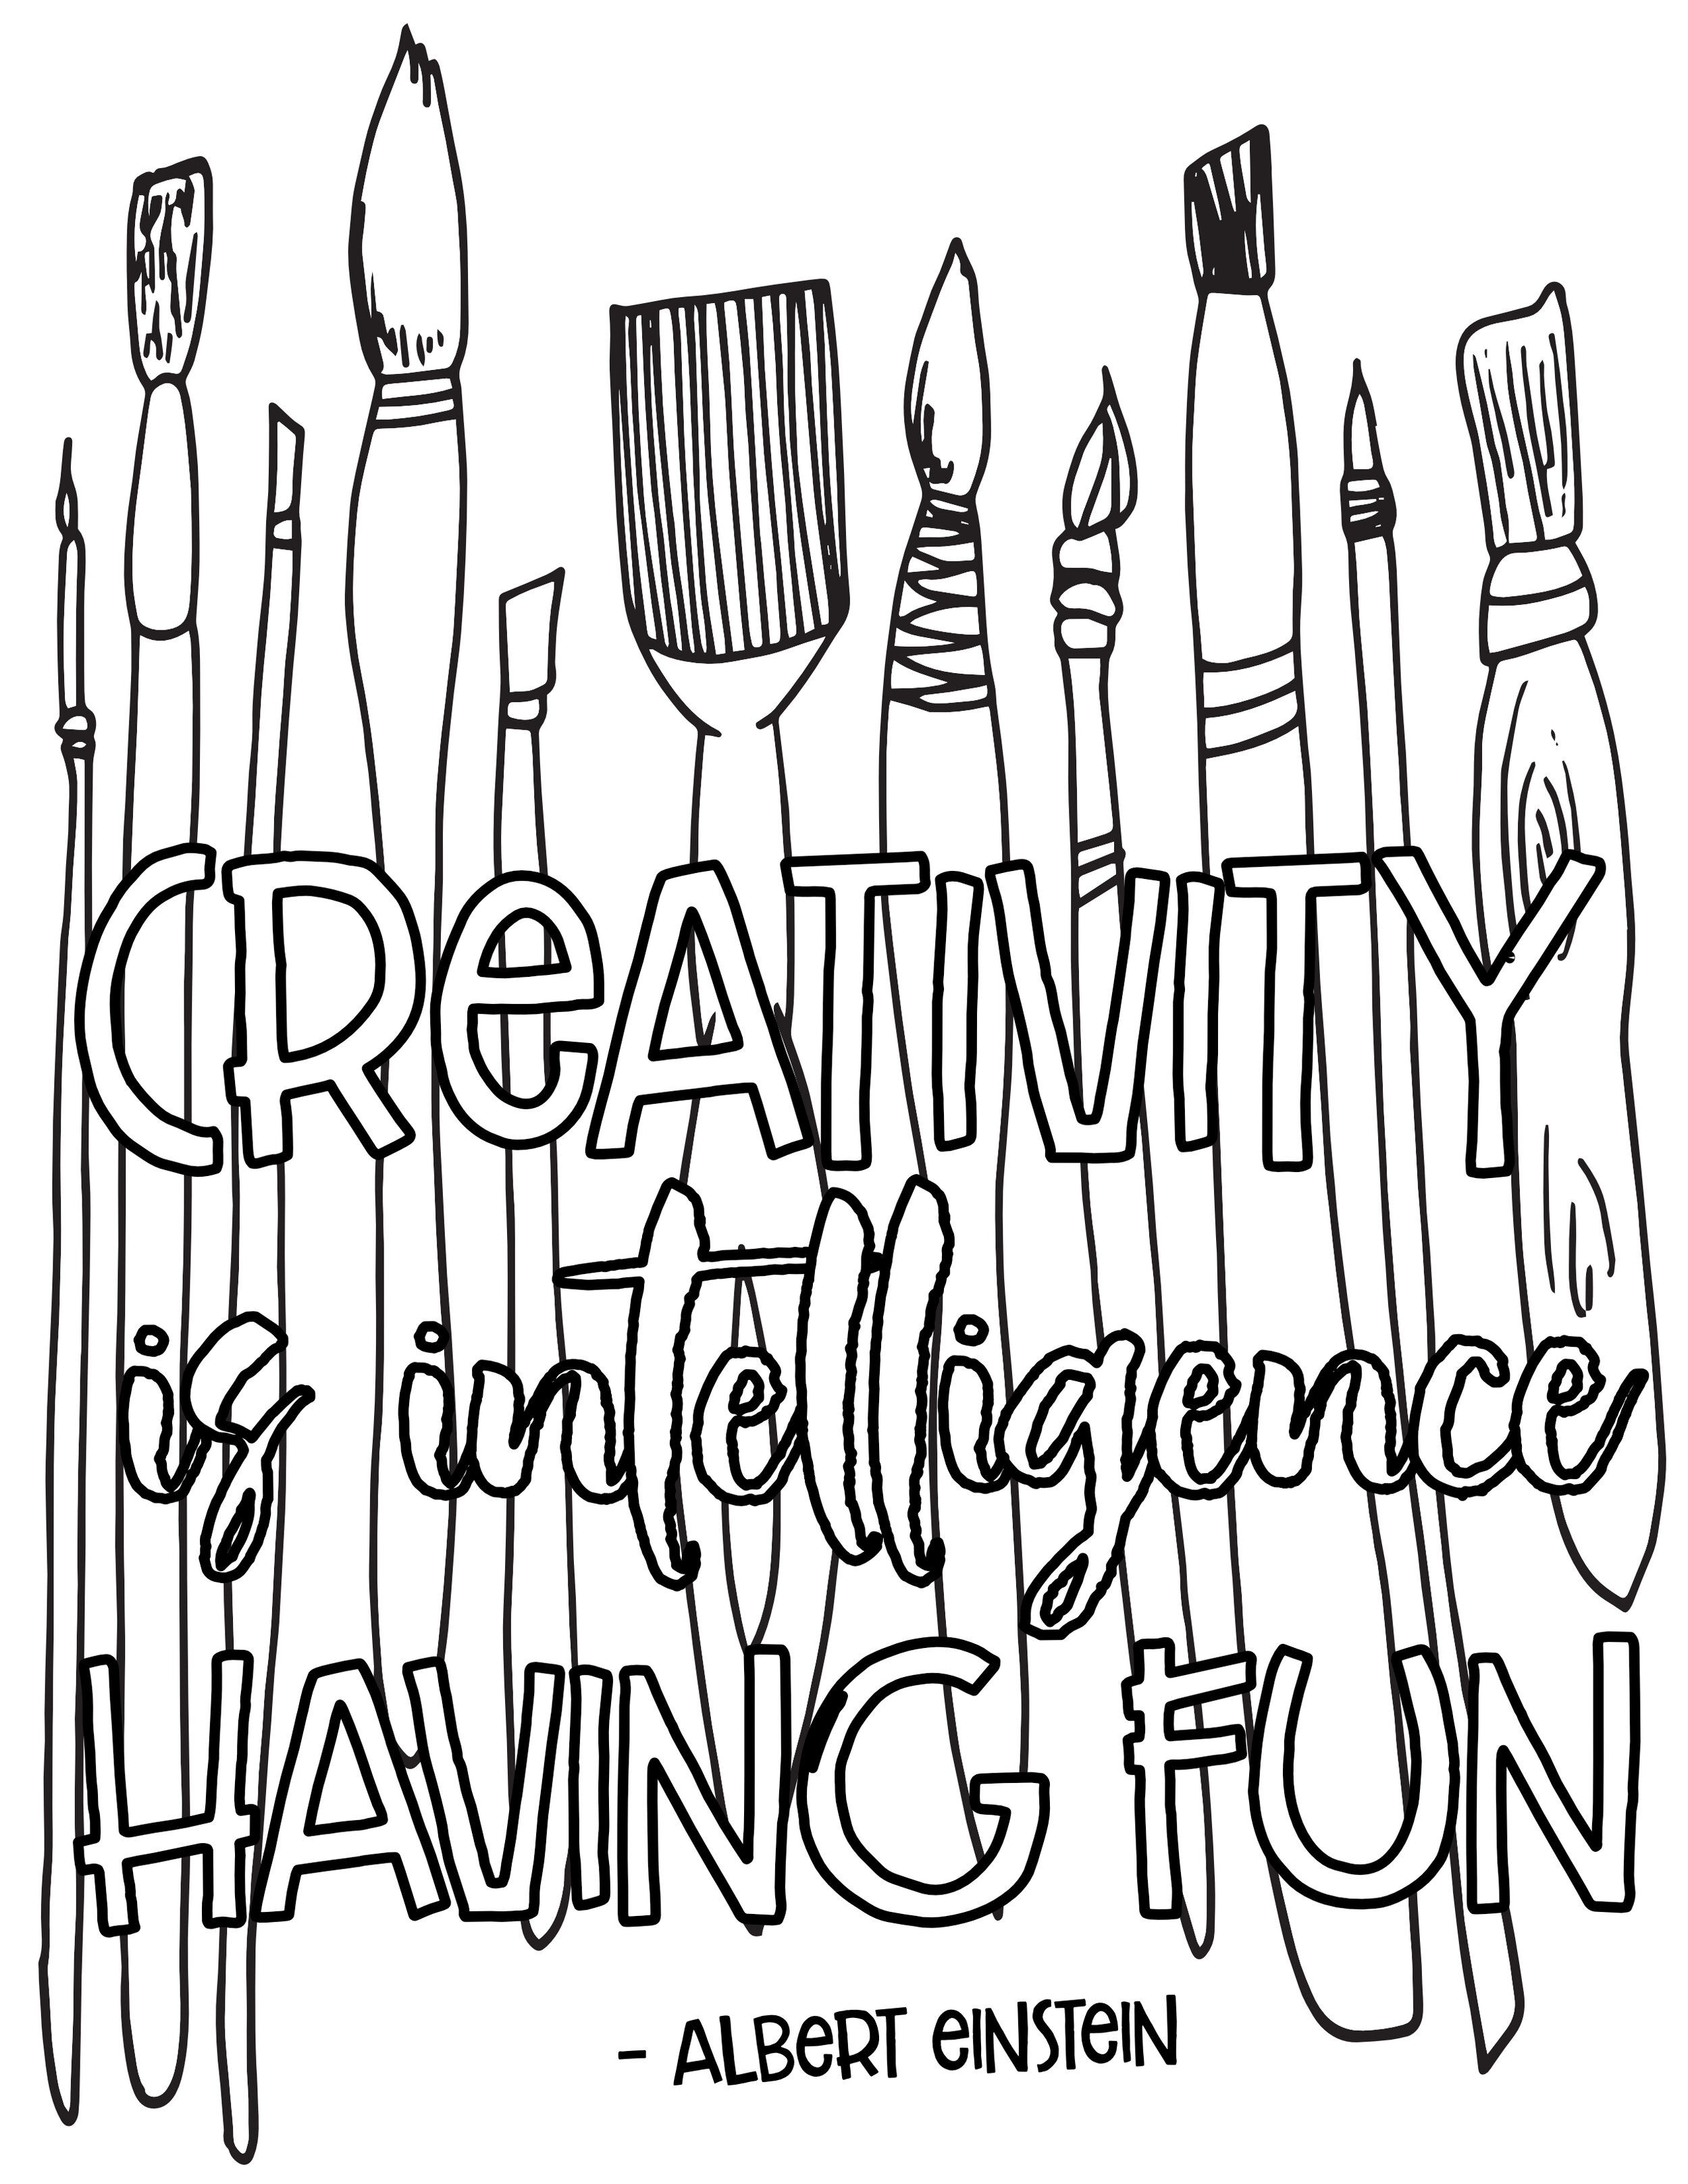 - CREATIVITY IS INTELLIGENCE HAVING FUN - Free Coloring Page